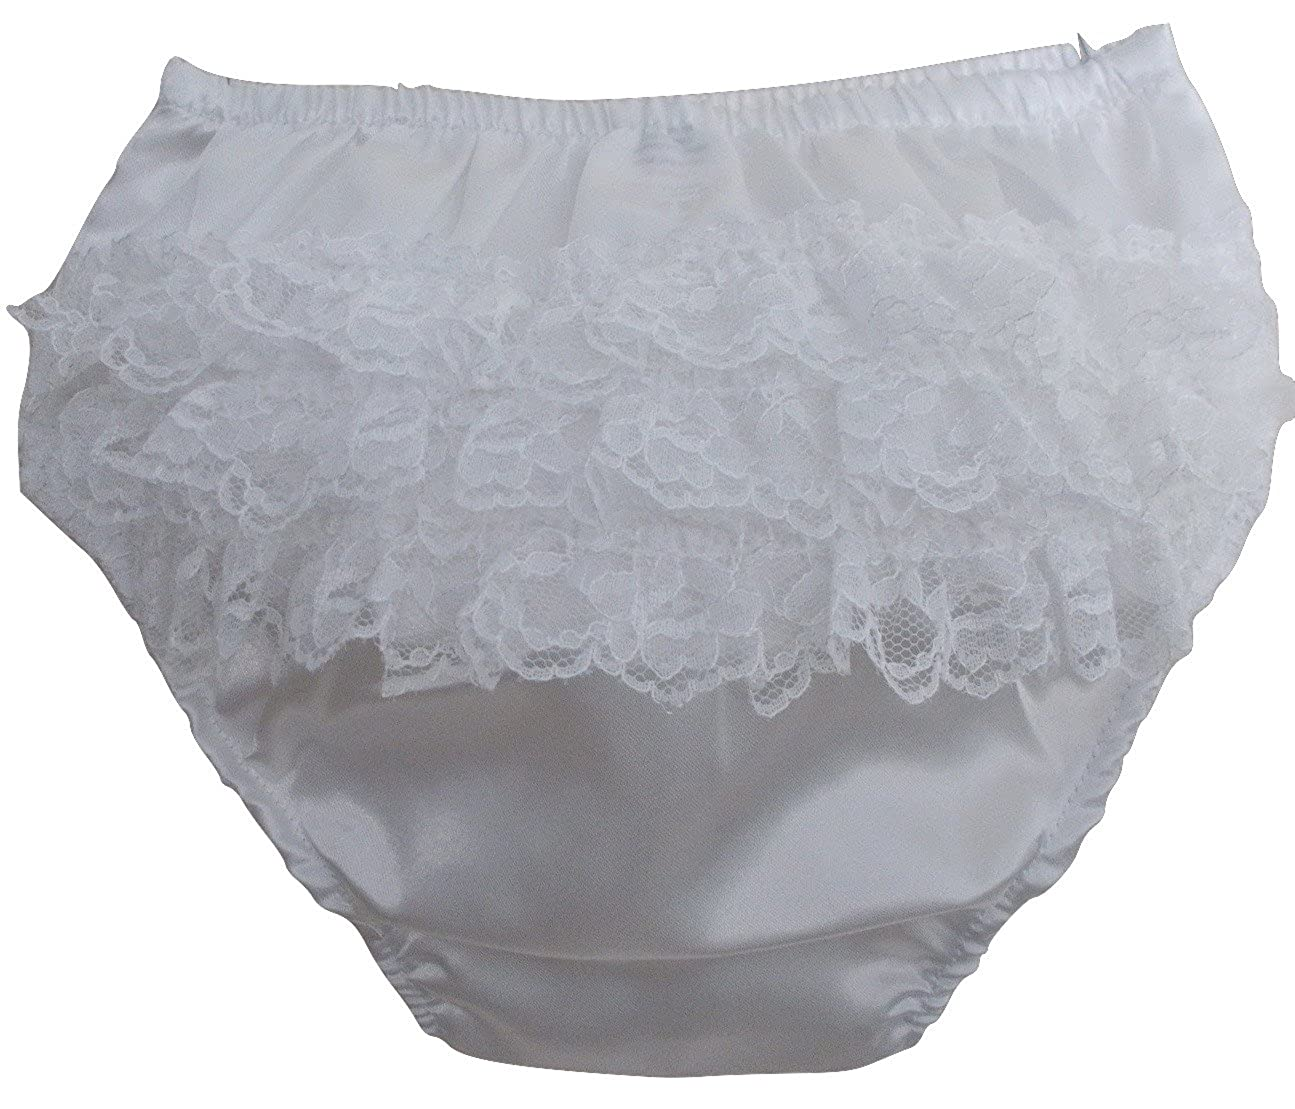 Baby Girls Ivory Satin Frill Back Knickers, Infant Girls Nappy Cover Pants, (0-6 Months) IVORY Soft Touch